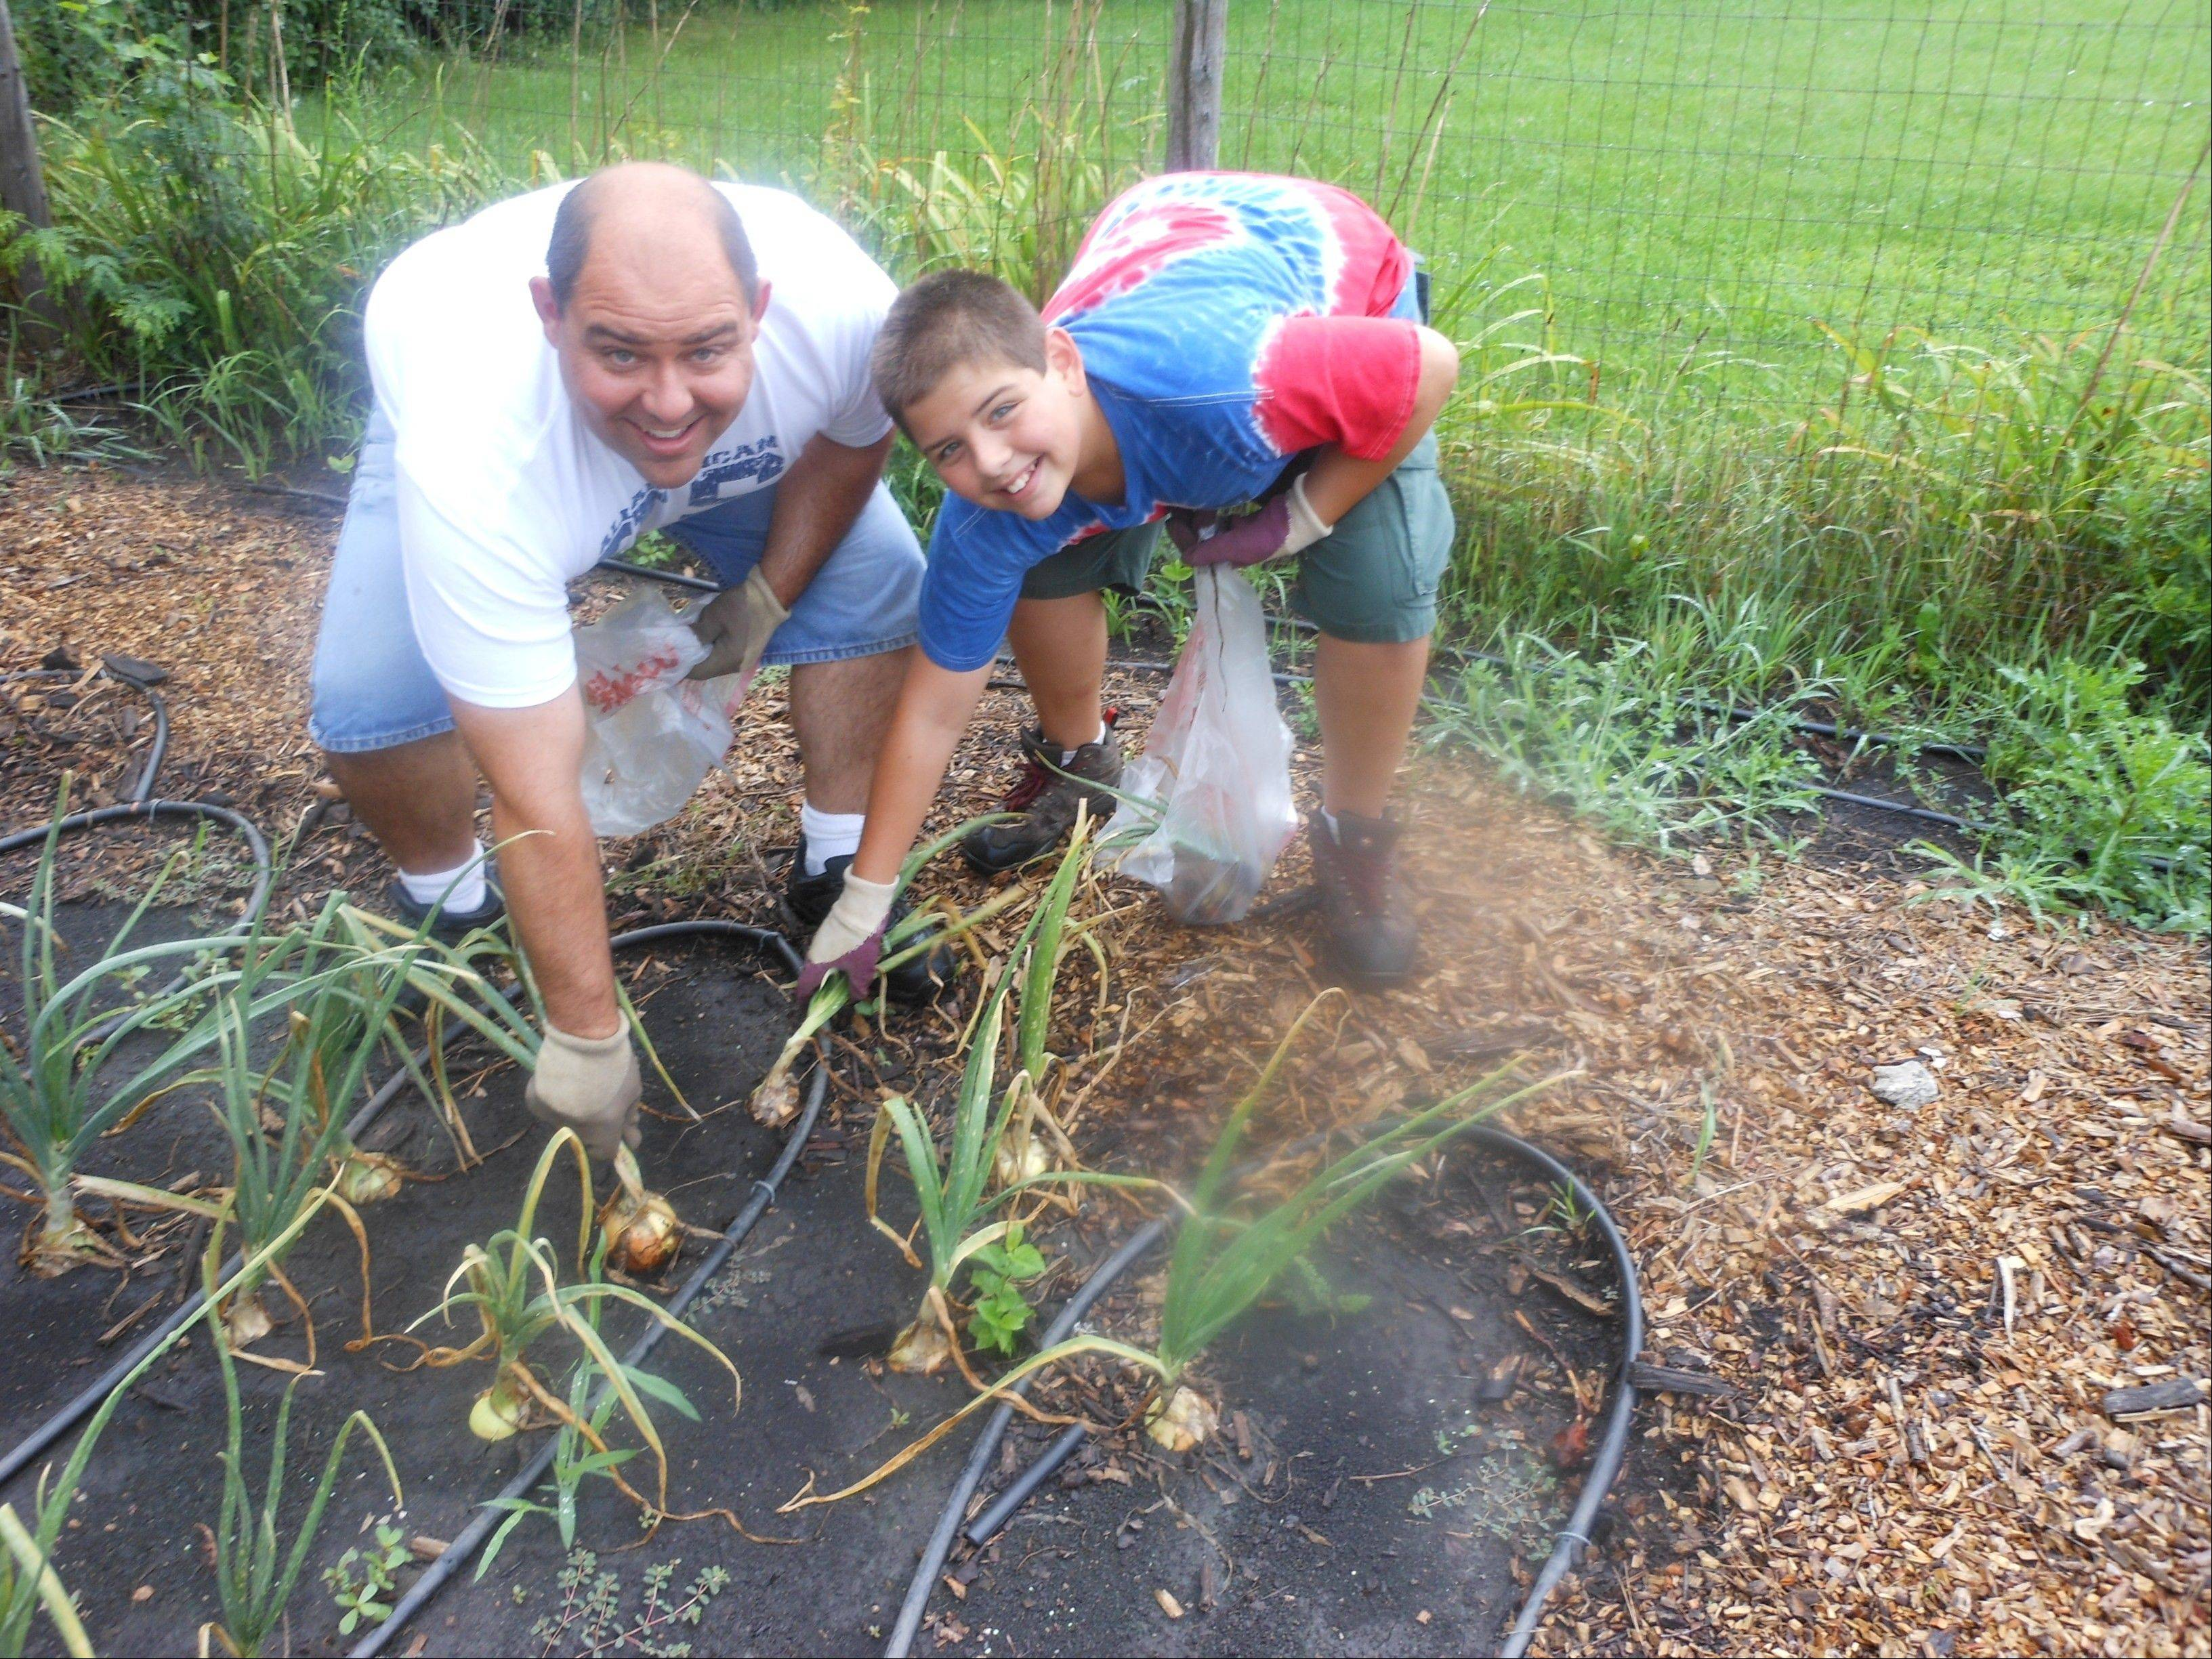 Andy Knapik, left, and his son, Joey, of Wheeling, tend to the garden at St. Alphonsus, which helps feed 150 families served by the church's food pantry each month.